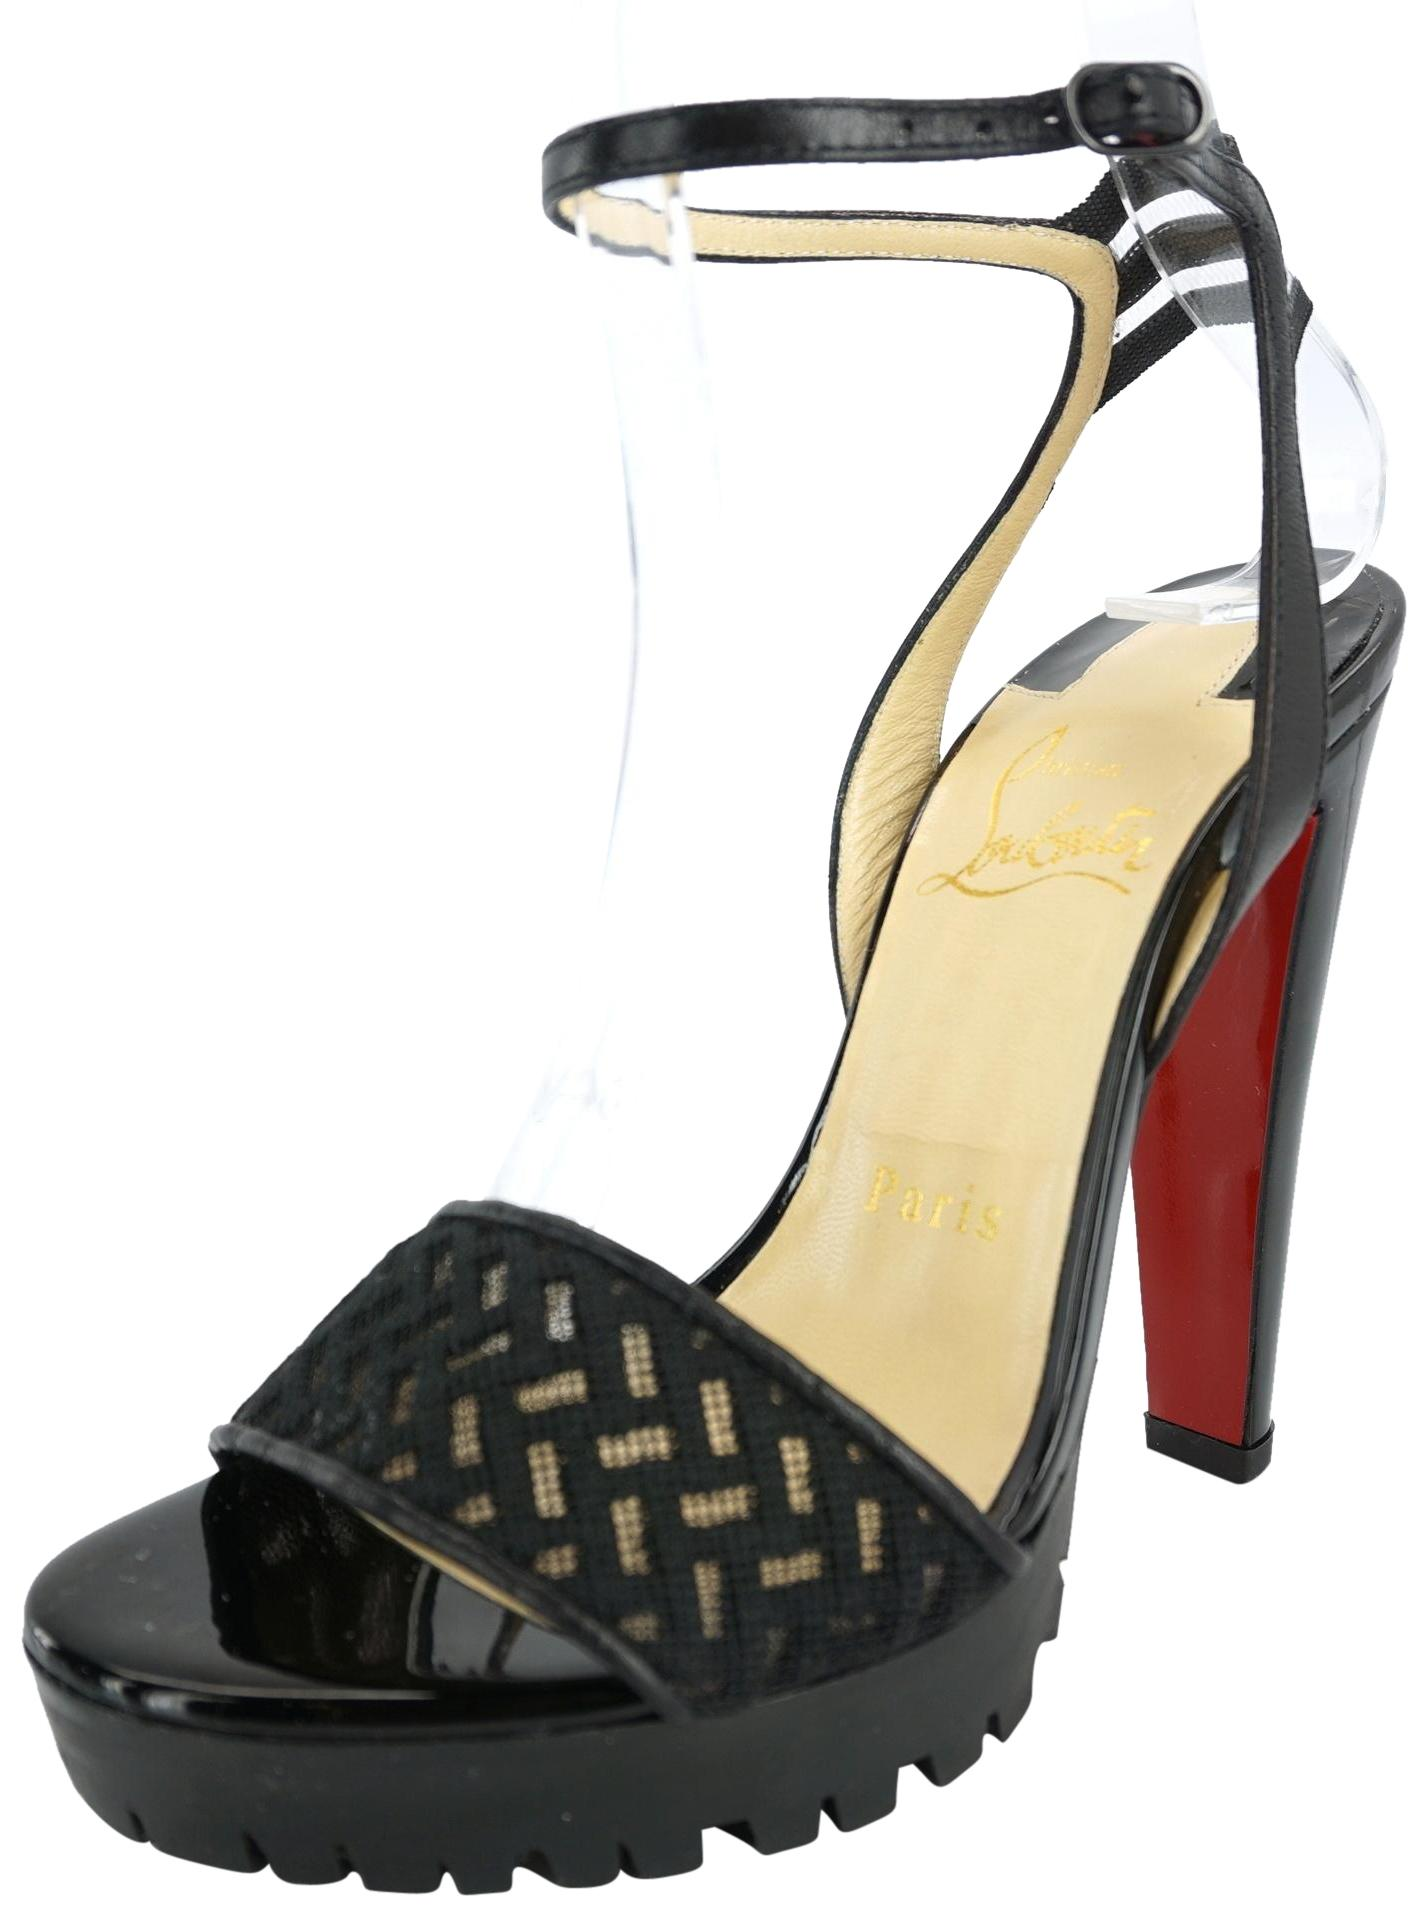 fee78a9c1738 Christian Louboutin Black Patent Mesh Volumetric Platform Platform Platform  Ankle Strappy Sandals Size EU 35.5 (Approx. US 5.5) Regular (M